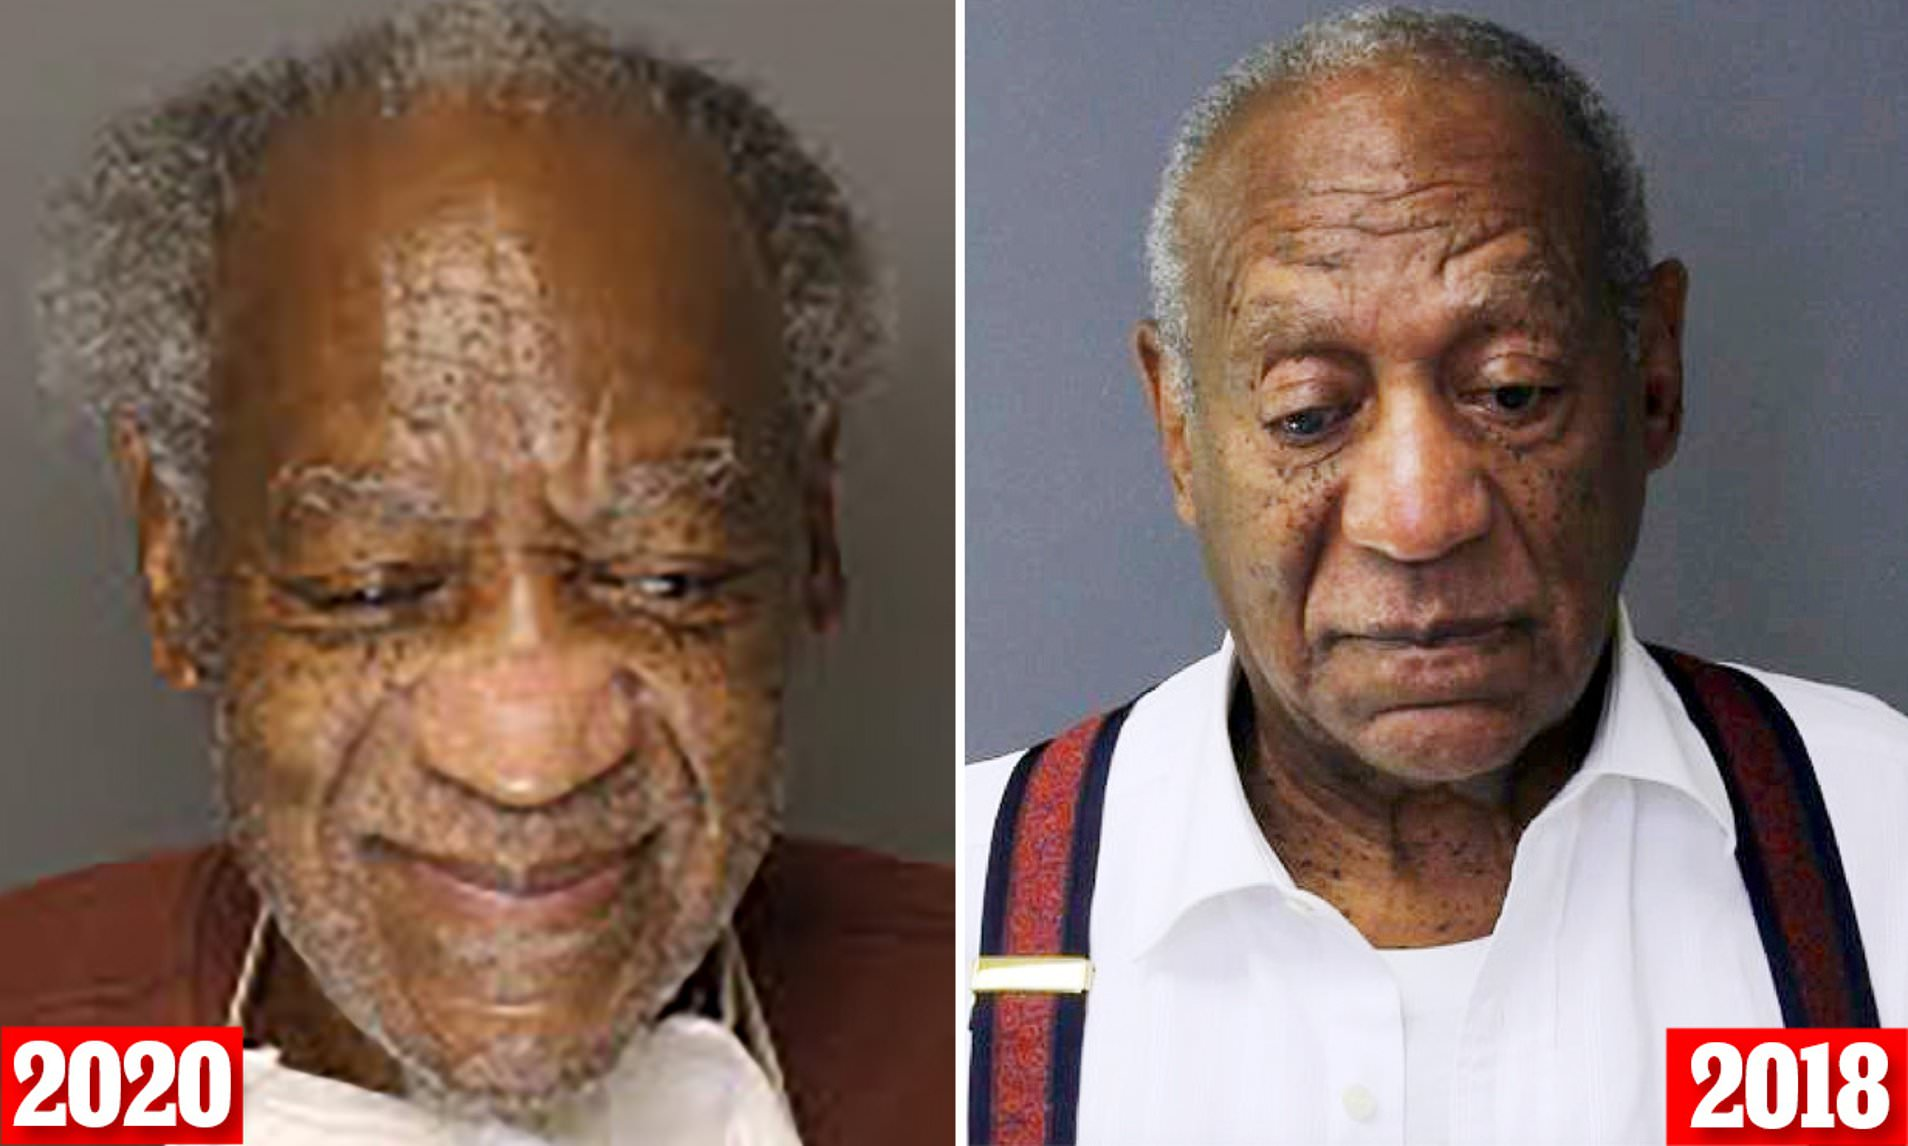 Smiling Bill Cosby causes stir with mugshot